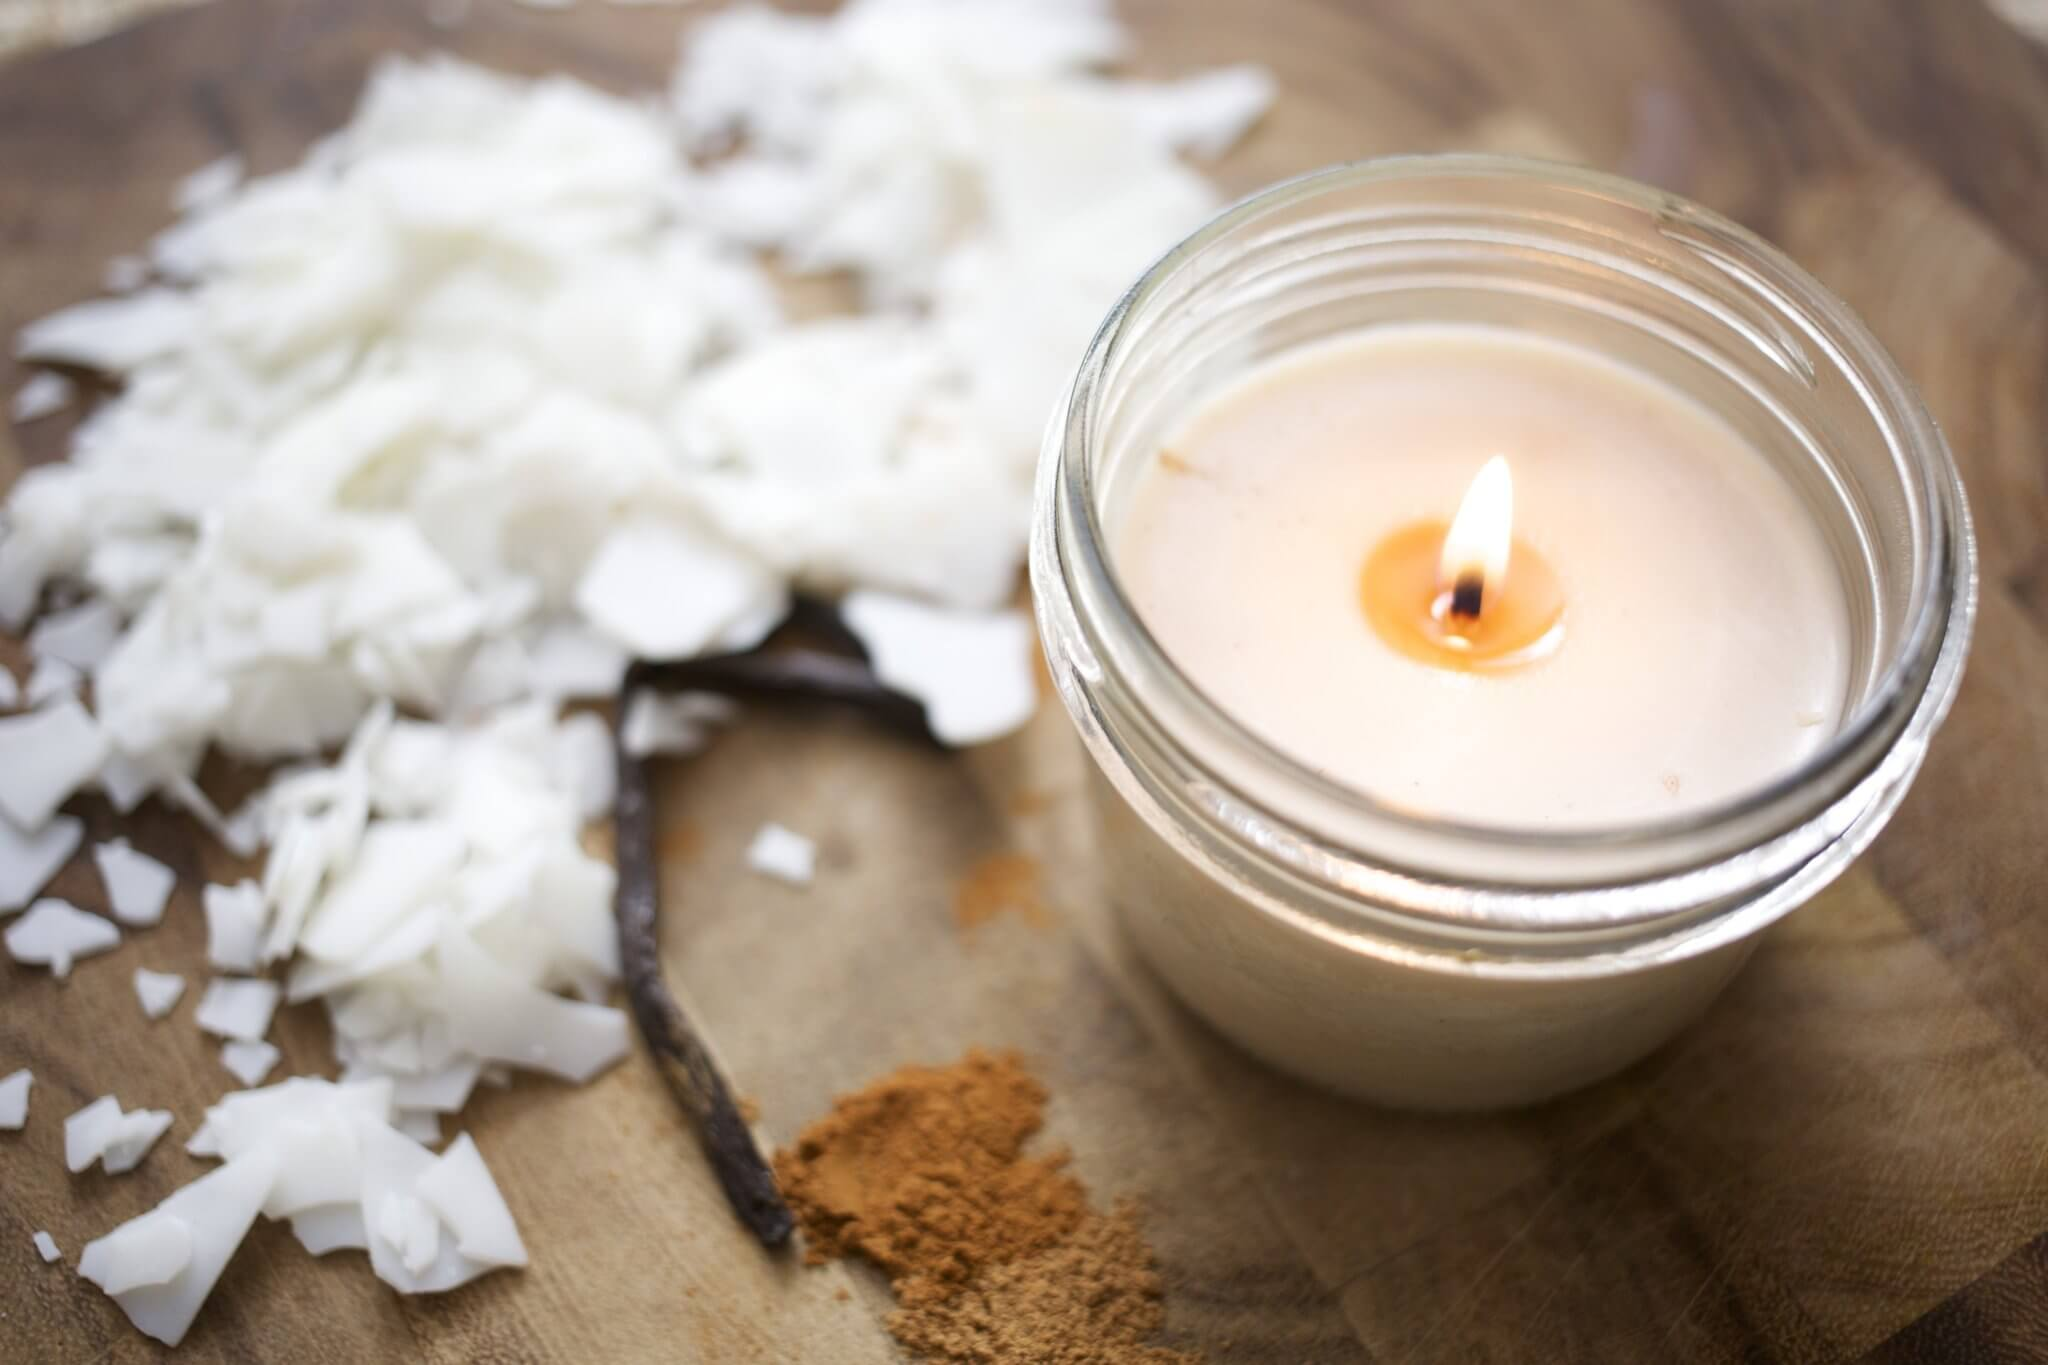 You can make your own scented candles in your home!